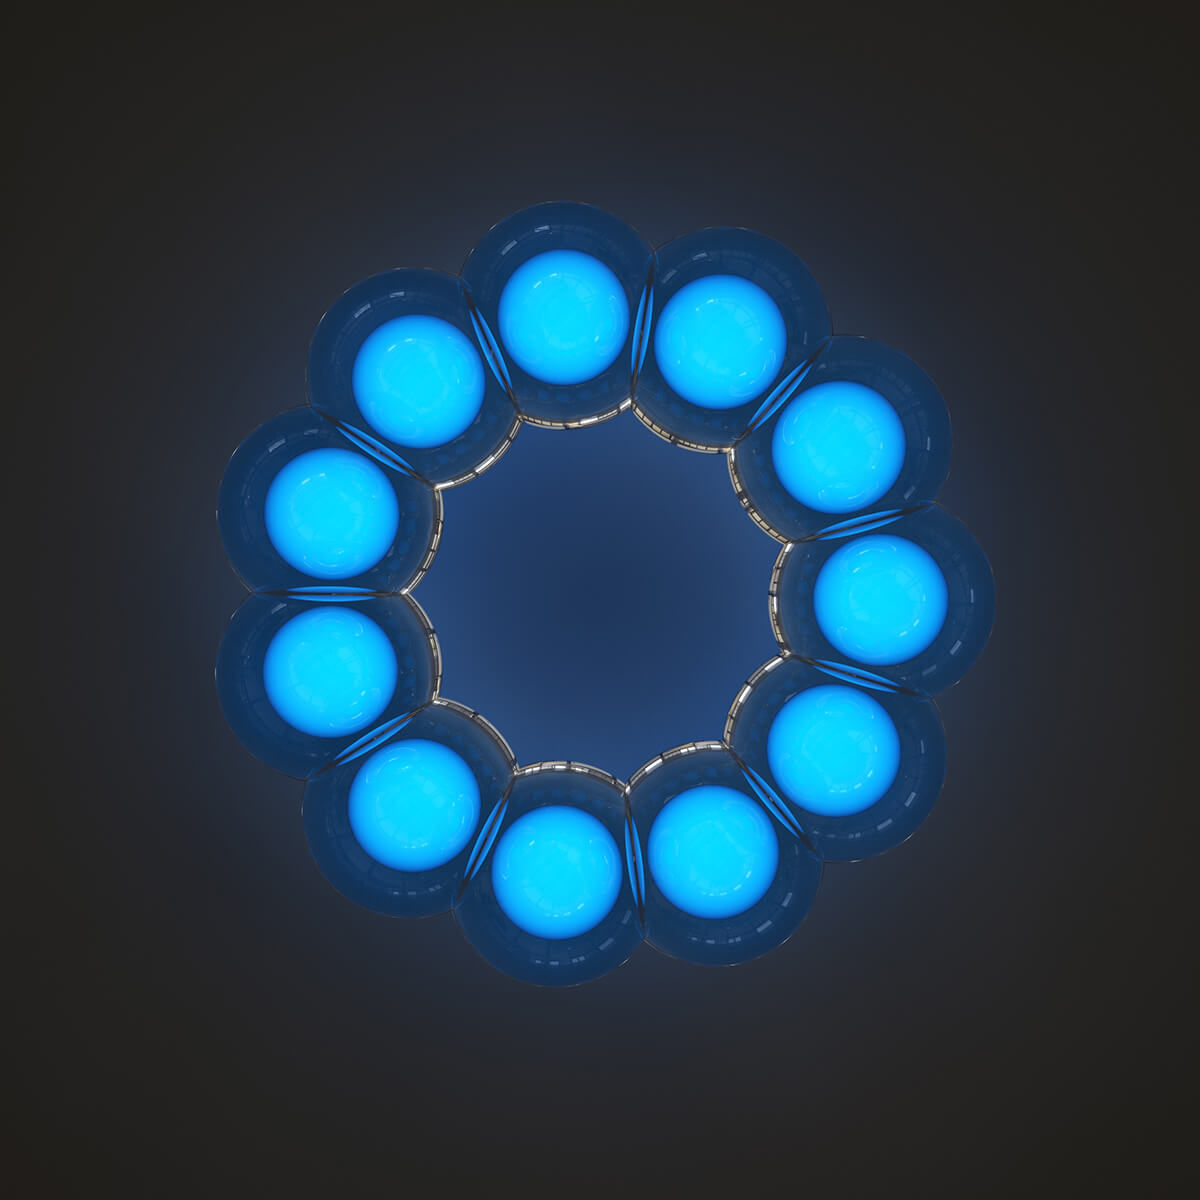 3D render of radial connected glass bubbles with blue lights inside